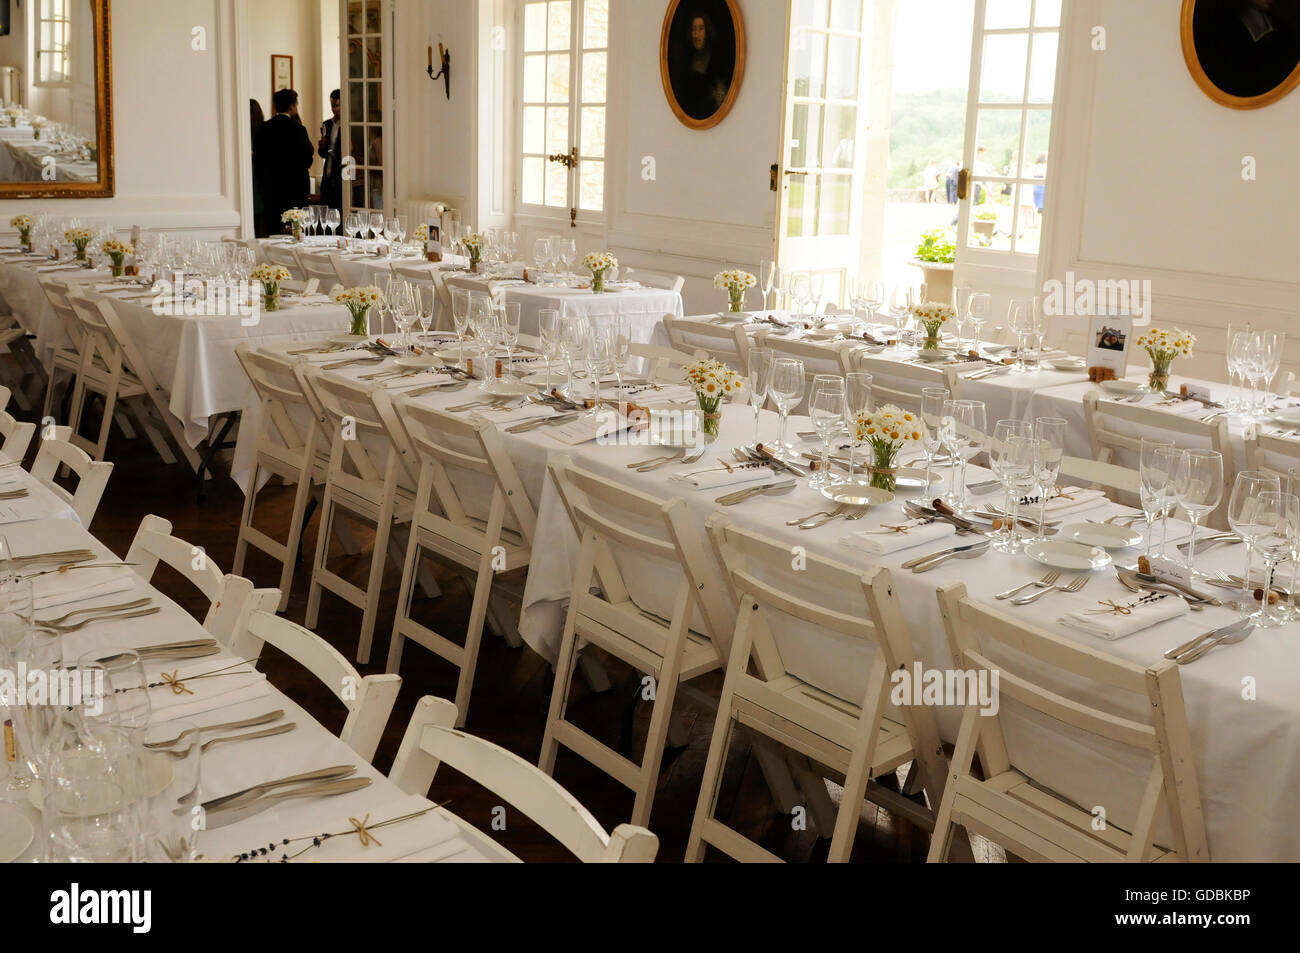 Tables ready for wedding reception - Stock Image